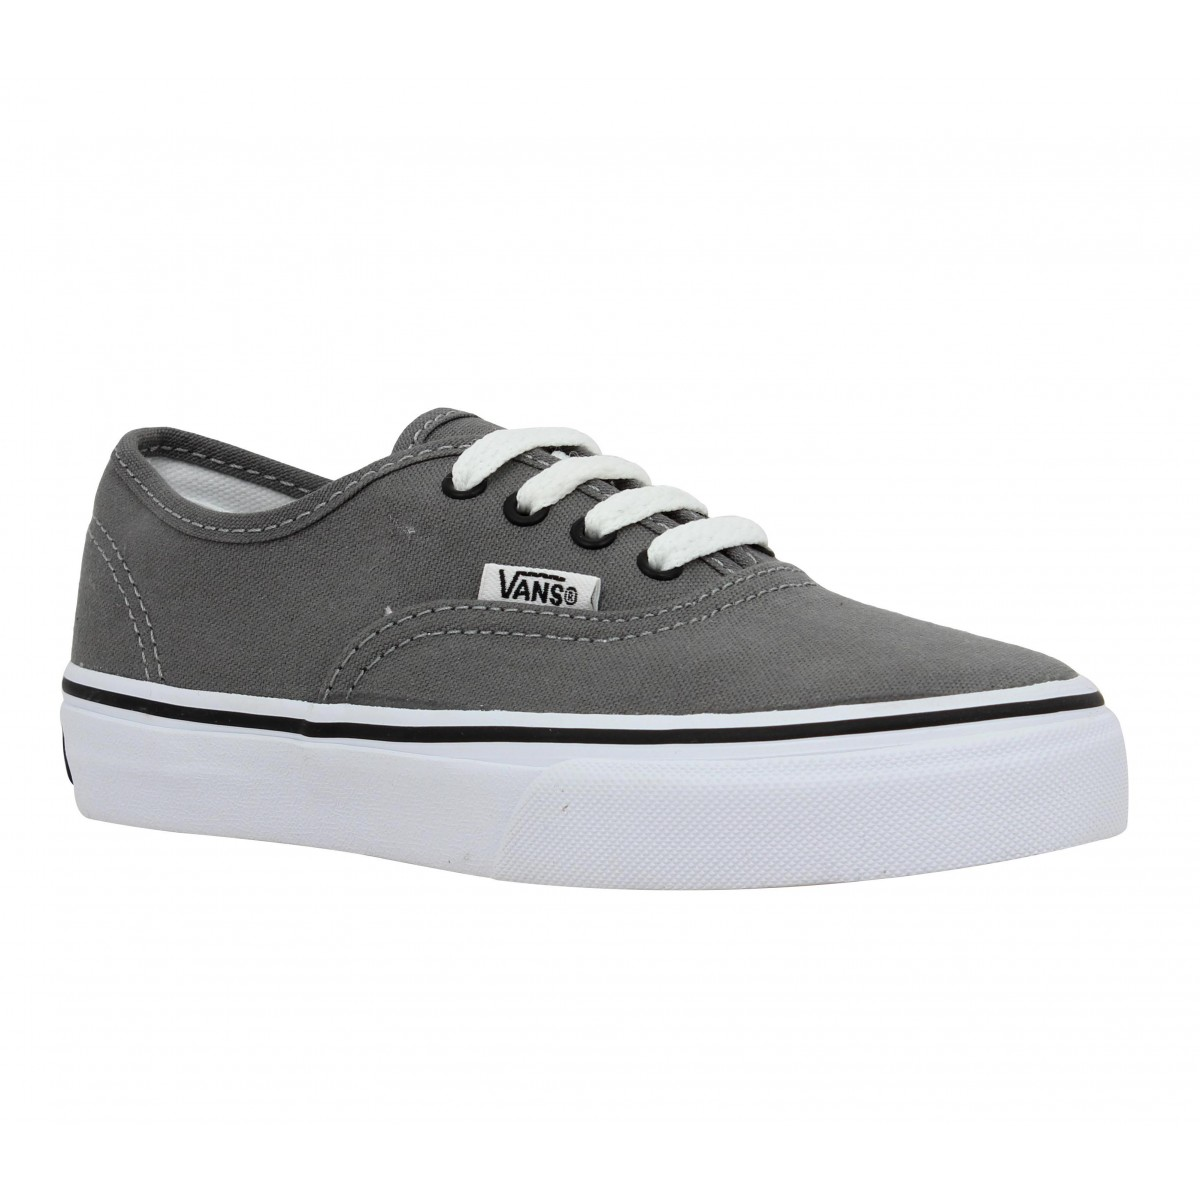 soldes vans authentic toile enfant gris fanny chaussures. Black Bedroom Furniture Sets. Home Design Ideas